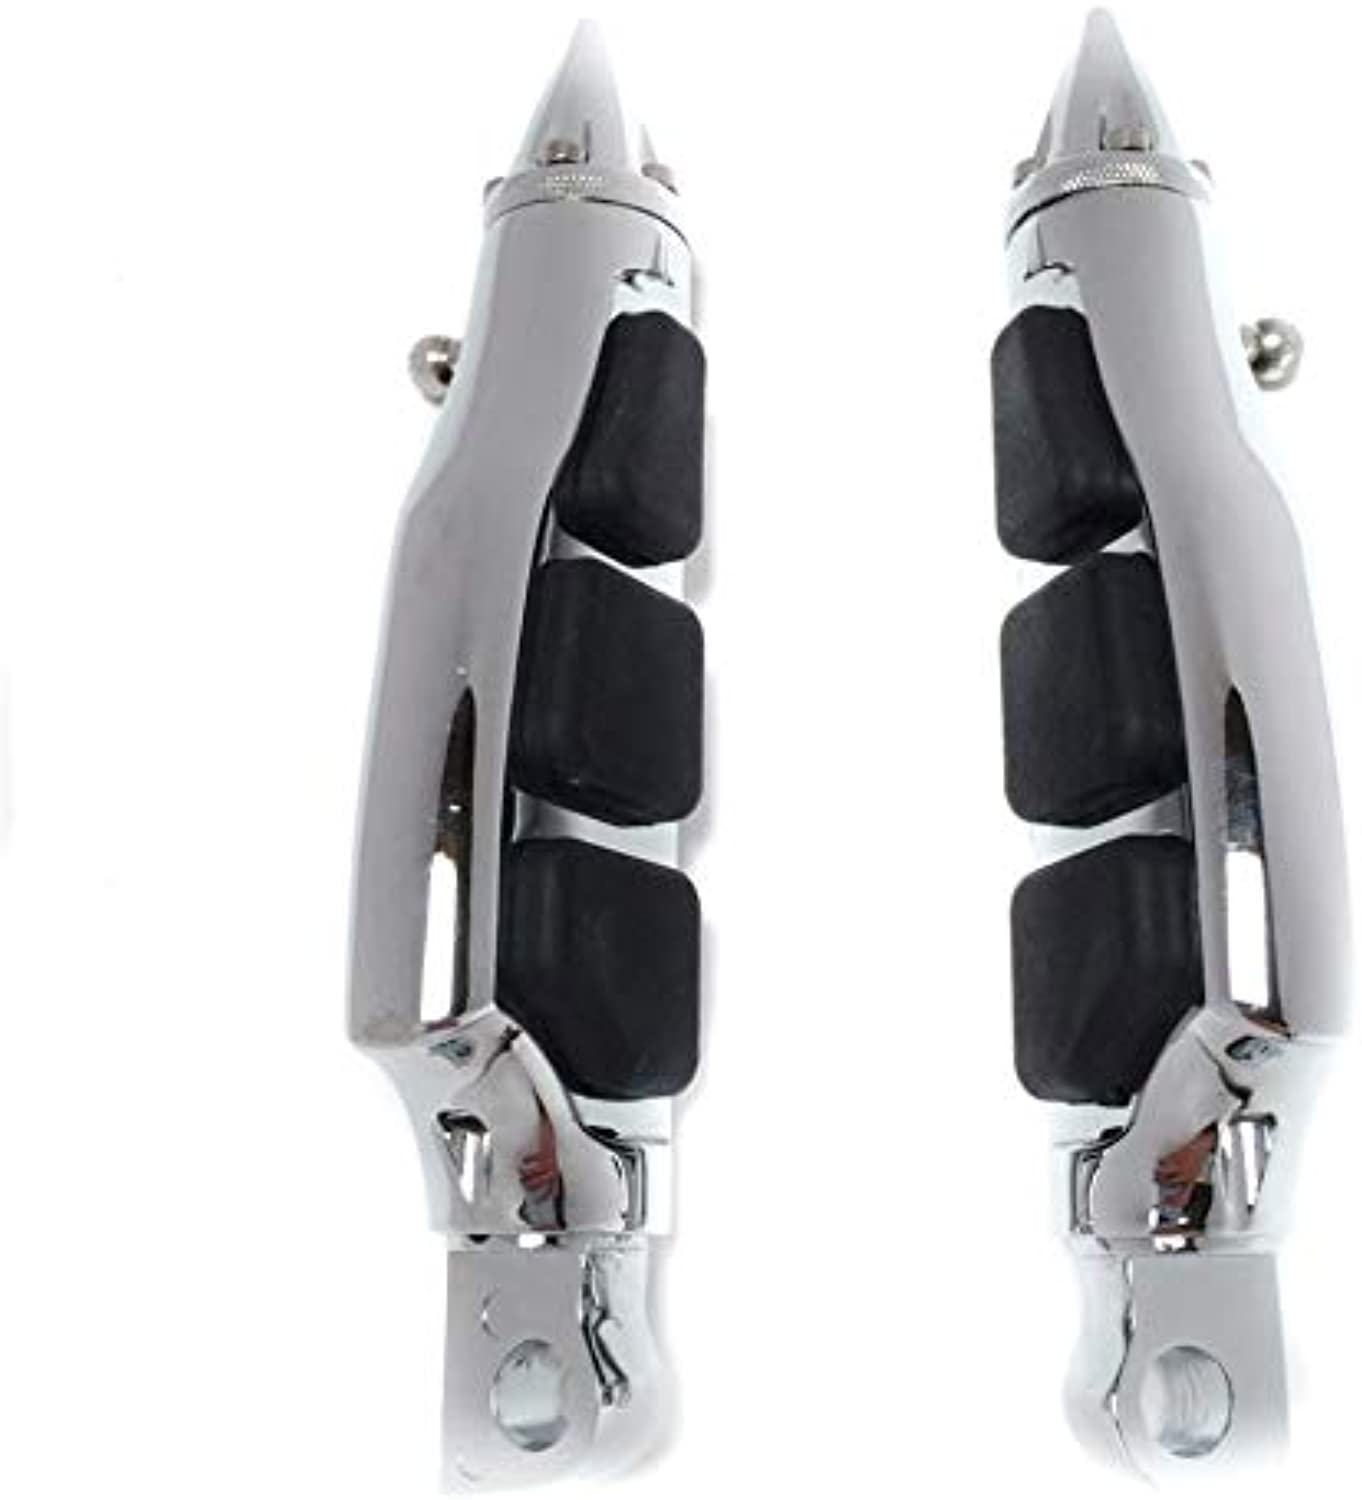 Frames & Fittings Aftermarket Motorcycle Parts for Motorcycle Harley Softail Sportster Dyna Glide Fat Boy Stiletto Pegs Foot Pegs Ch